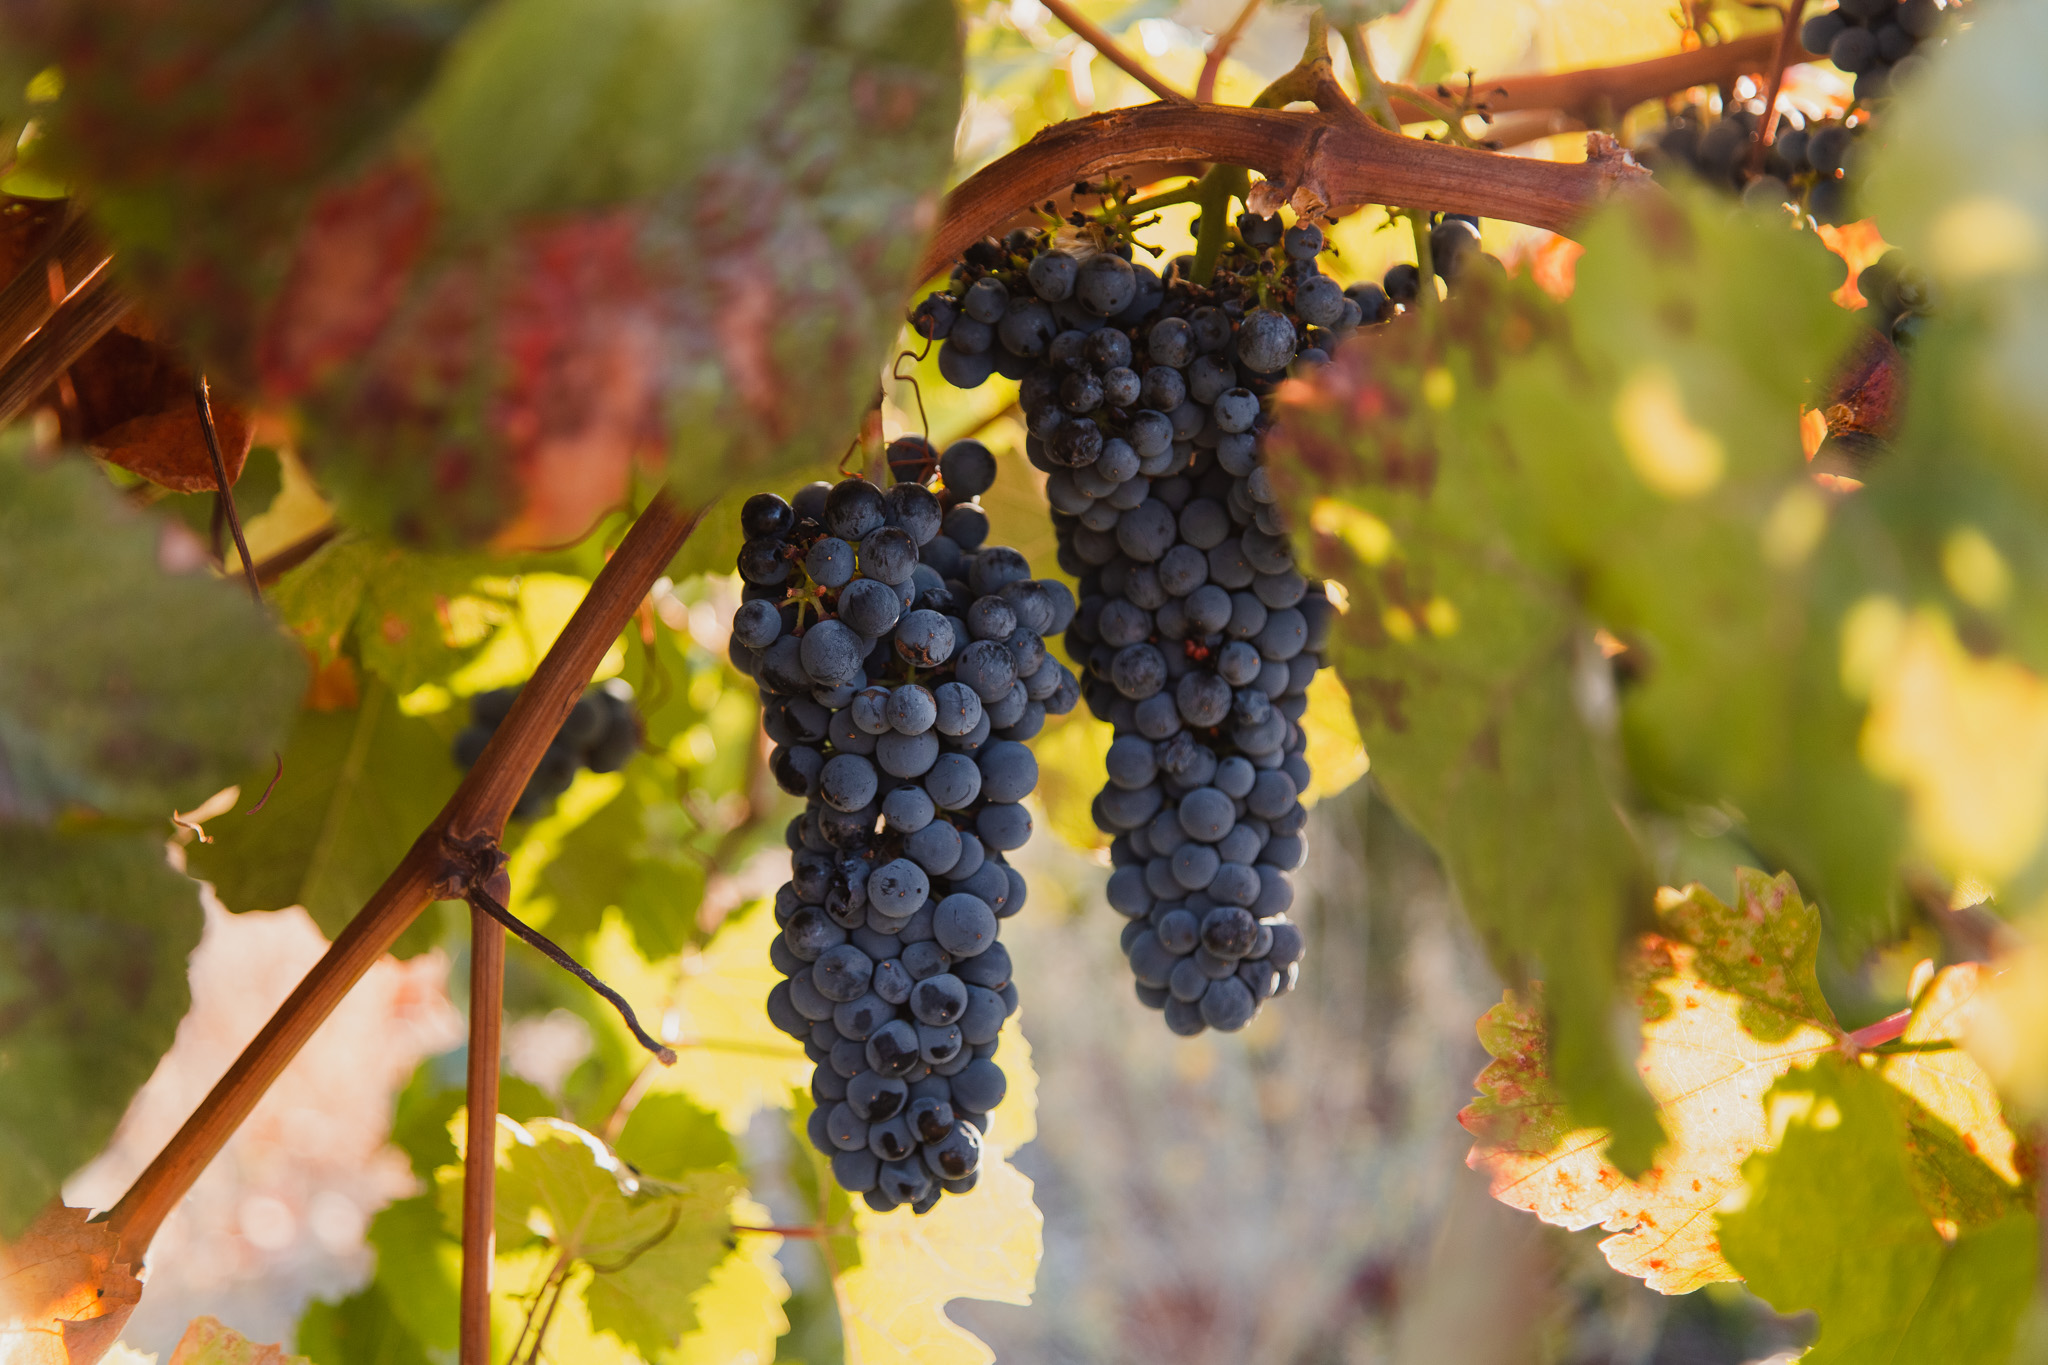 Close Up Photography of Wine Grape Cluster Captured During Wine Harvest in Paso Robles, California